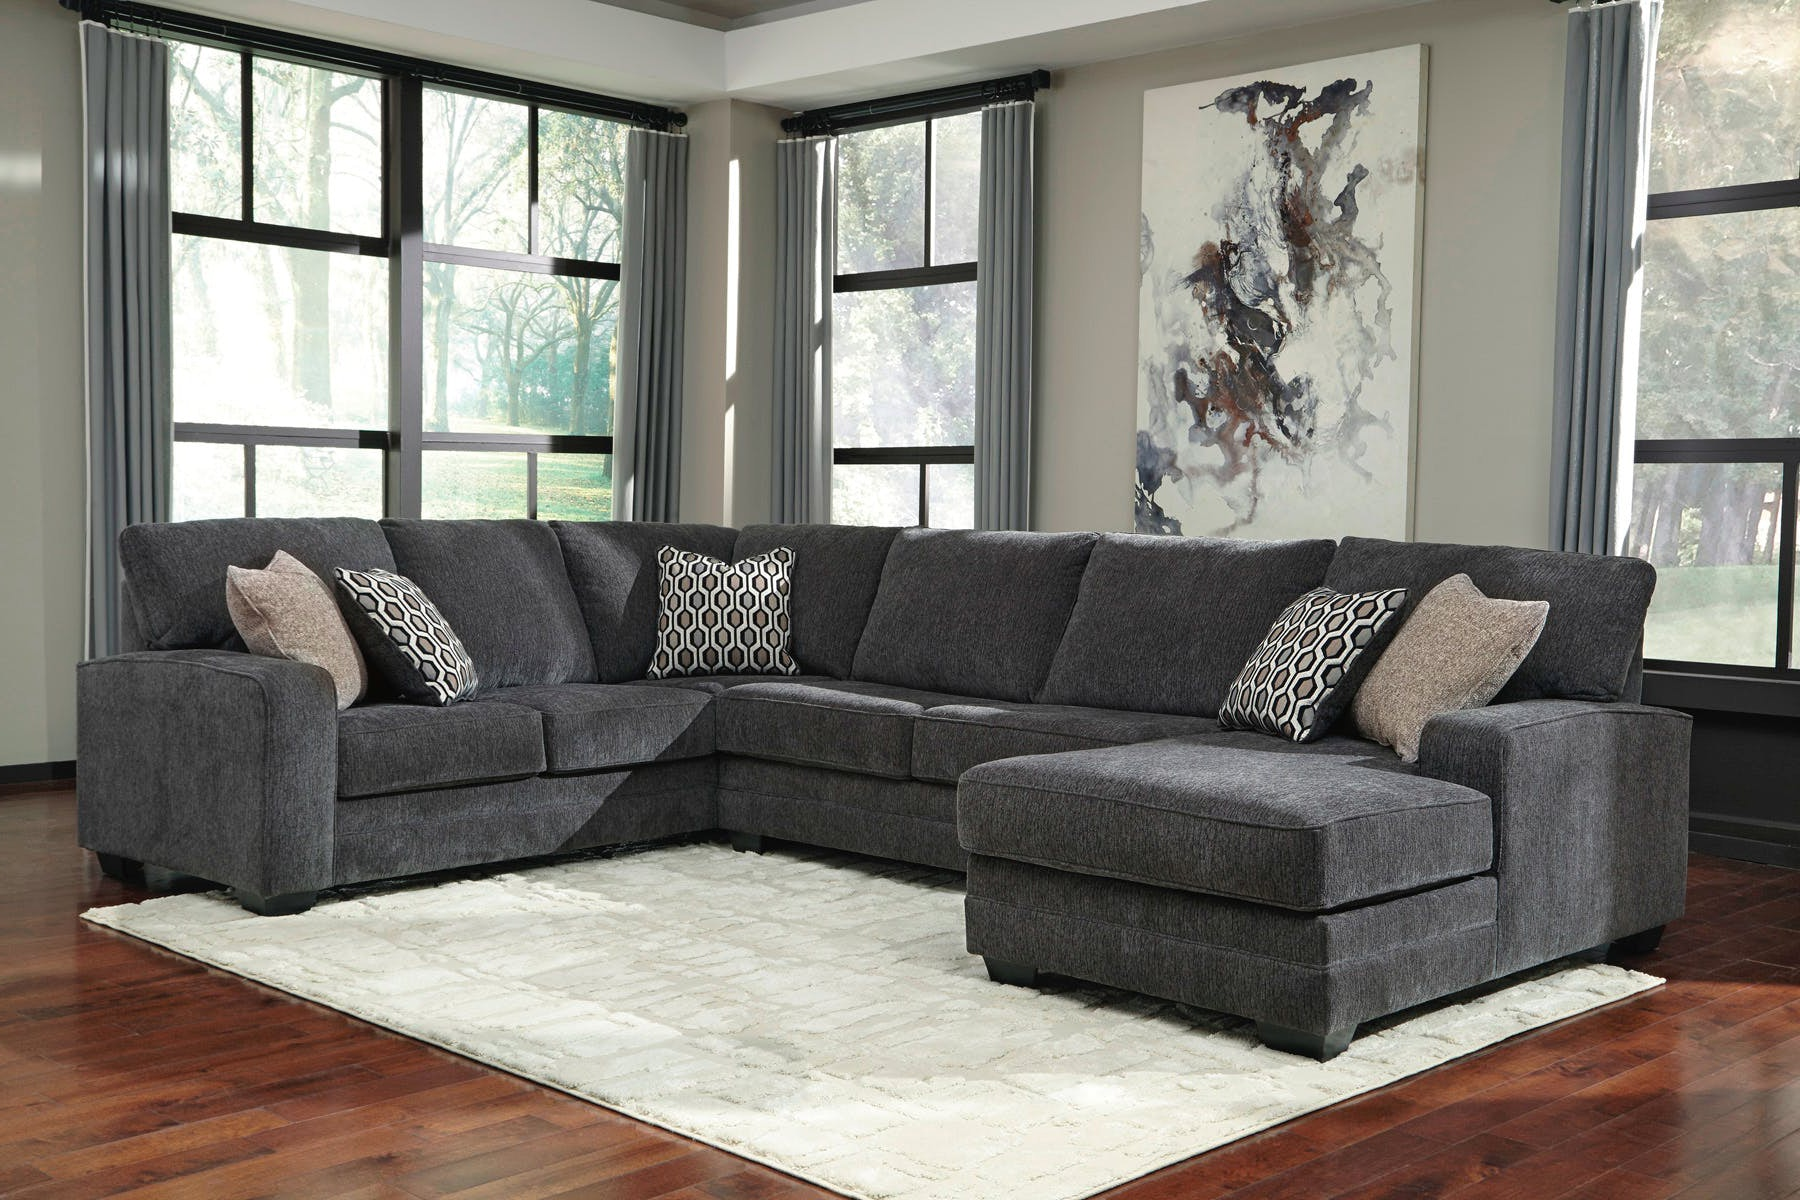 piece sectional vista left furniture products b ahfa item chocolate dealer with sofa ashley casual locator signature chaise